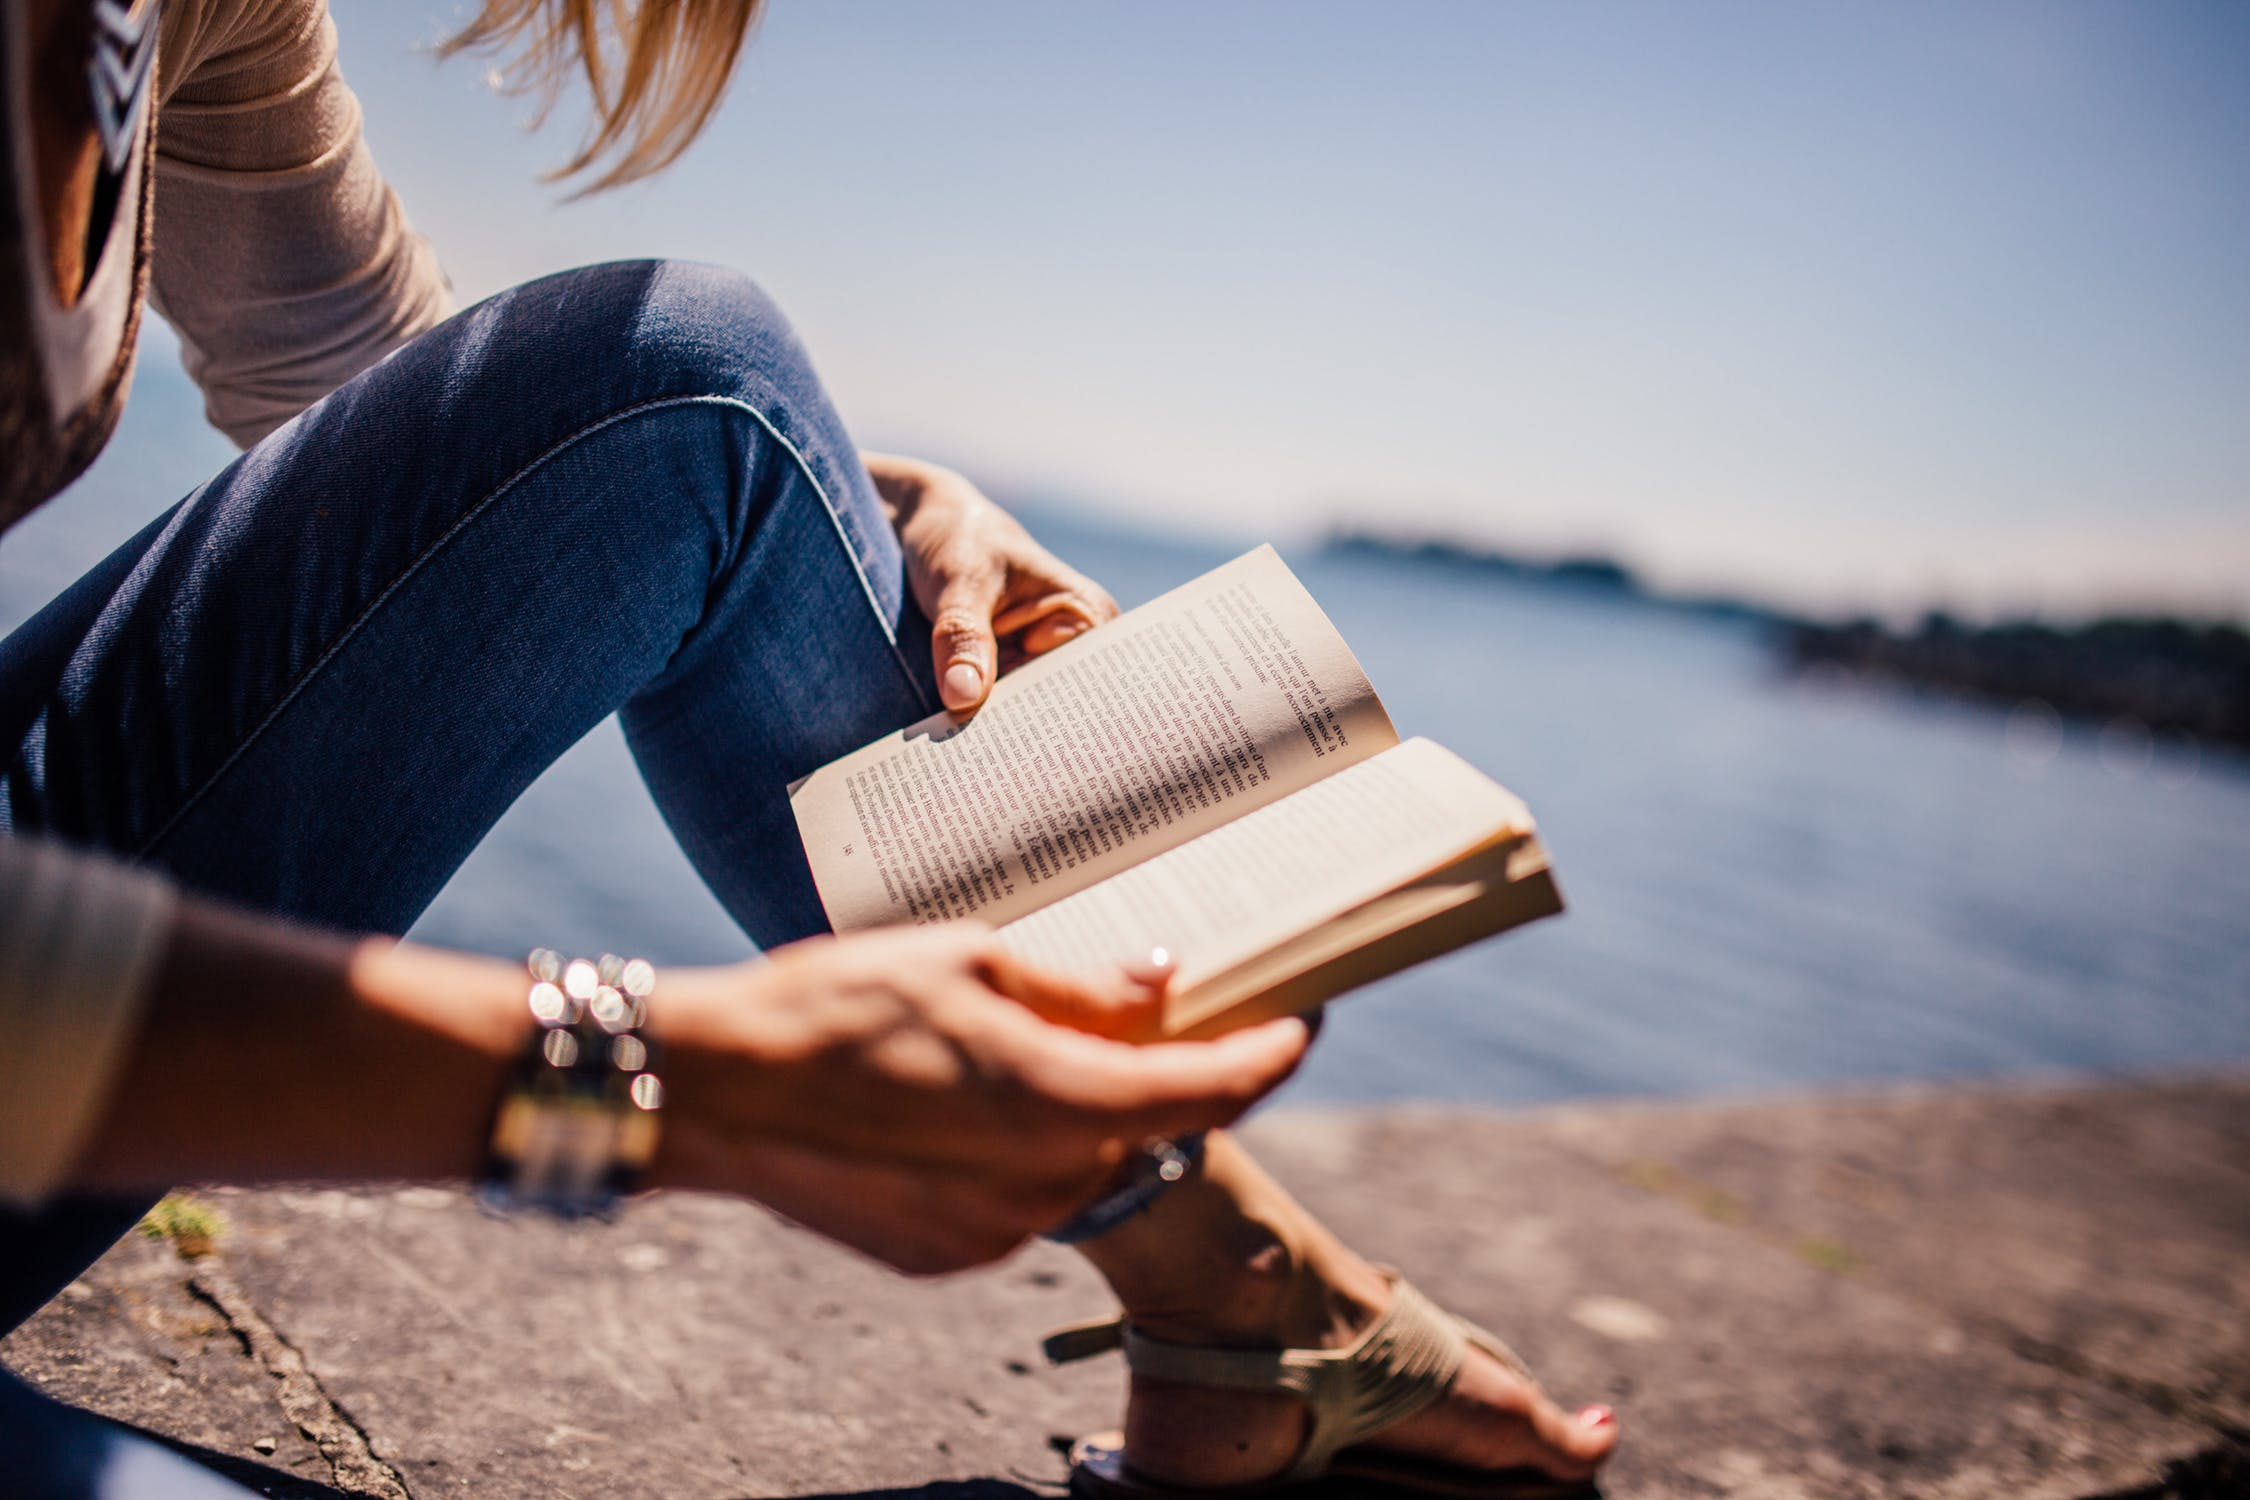 The Beginners' Guide to Attracting a Reading Audience